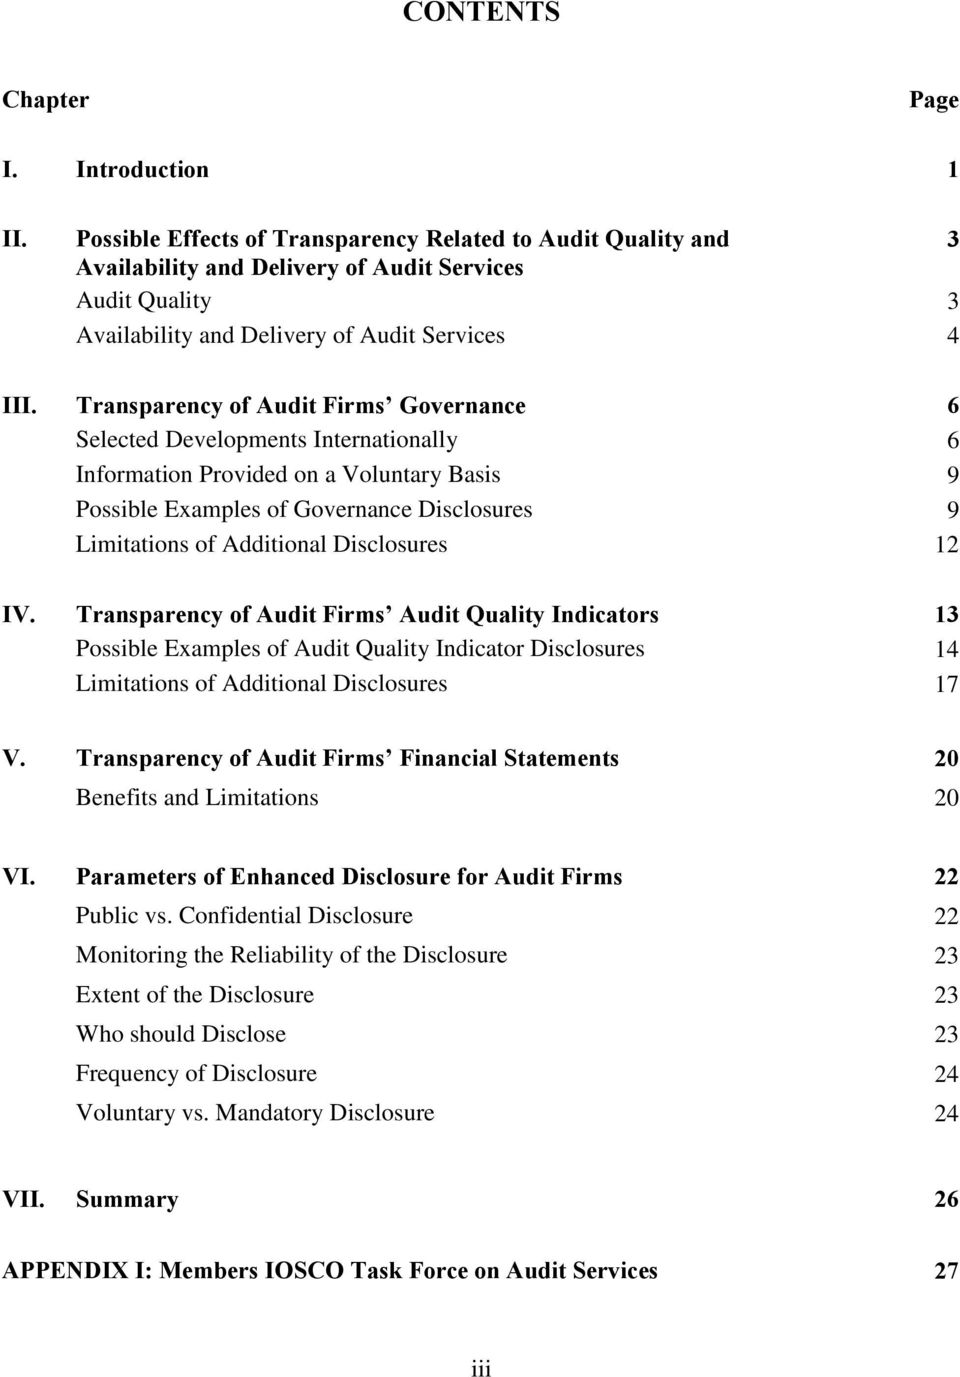 Transparency of Audit Firms Governance 6 Selected Developments Internationally 6 Information Provided on a Voluntary Basis 9 Possible Examples of Governance Disclosures 9 Limitations of Additional